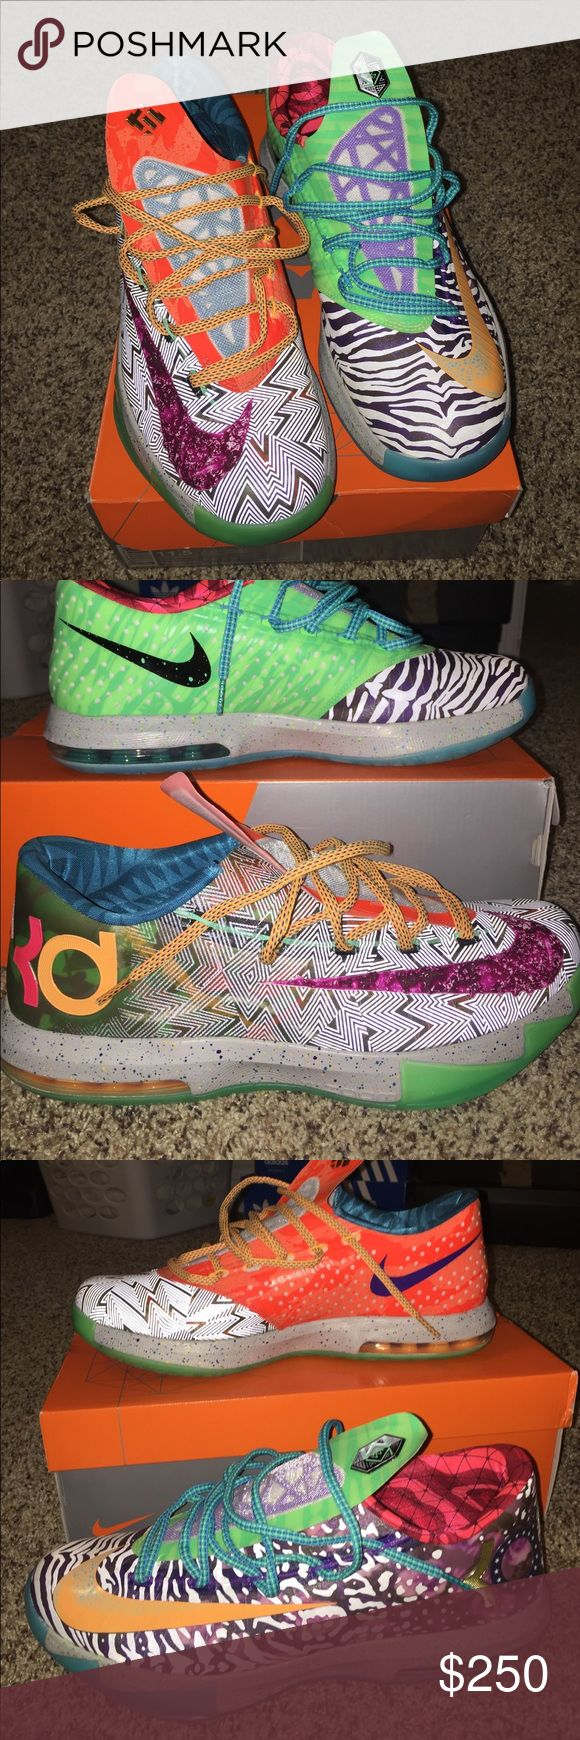 What the Kd 6,,, size 11.5 What the kd 6 . Size 11.5 worn a few times. No, they are not fake and no, I am not looking to trade. Nike Shoes Sneakers